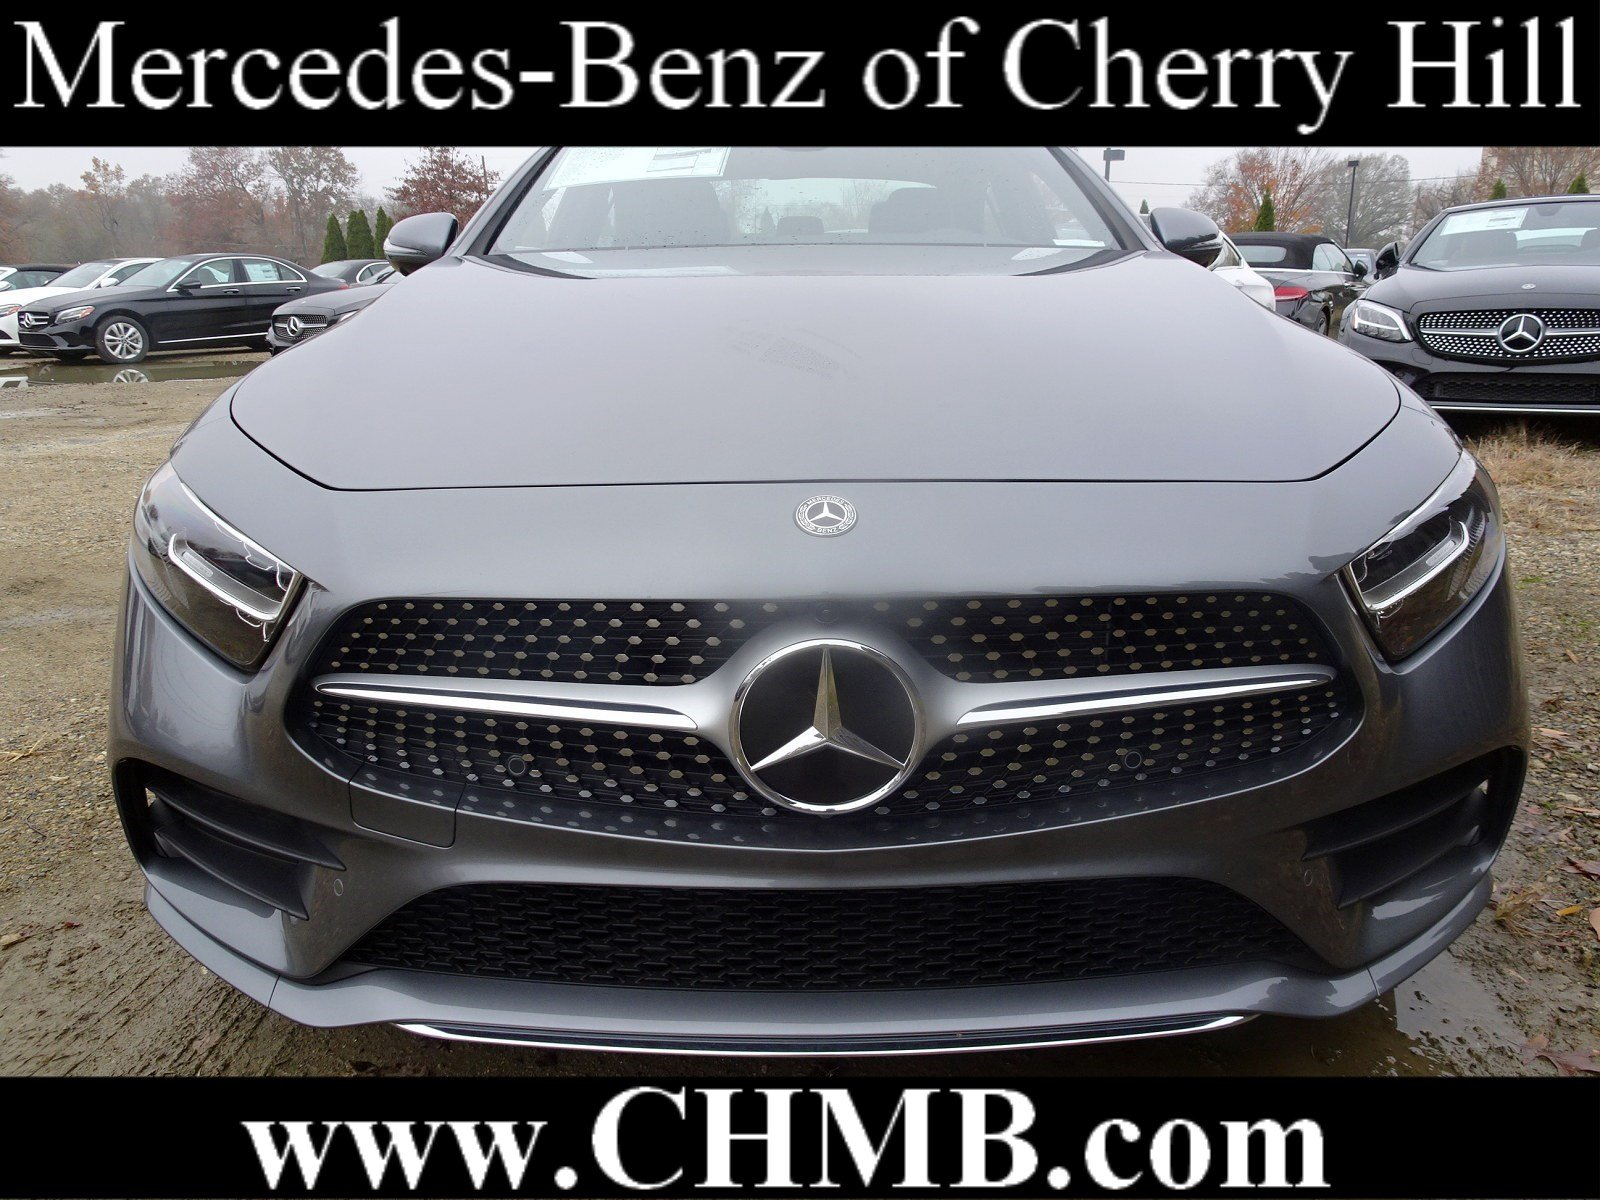 New 2019 Mercedes Benz CLS CLS 450 Coupe in Cherry Hill M2470